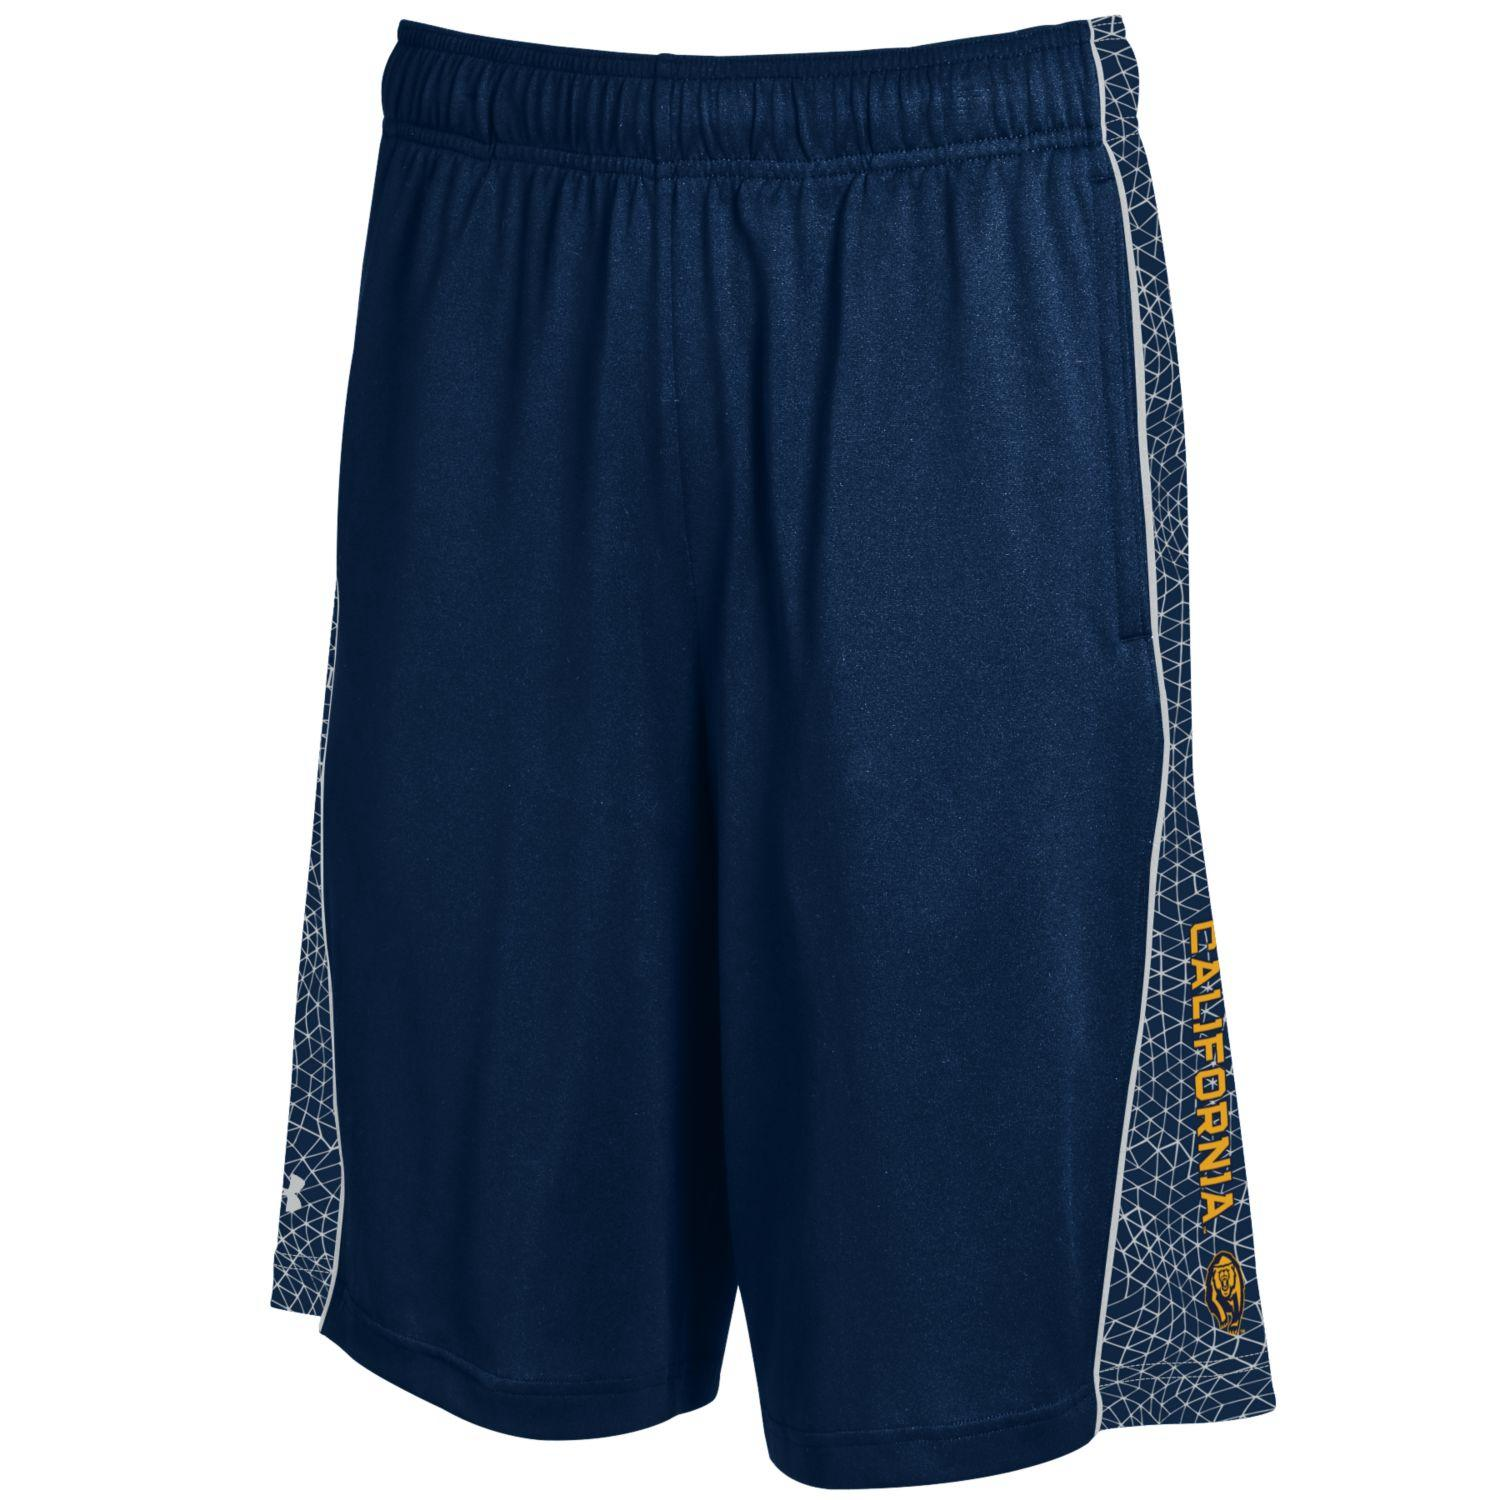 University of California Berkeley Under Armour Tech Shorts